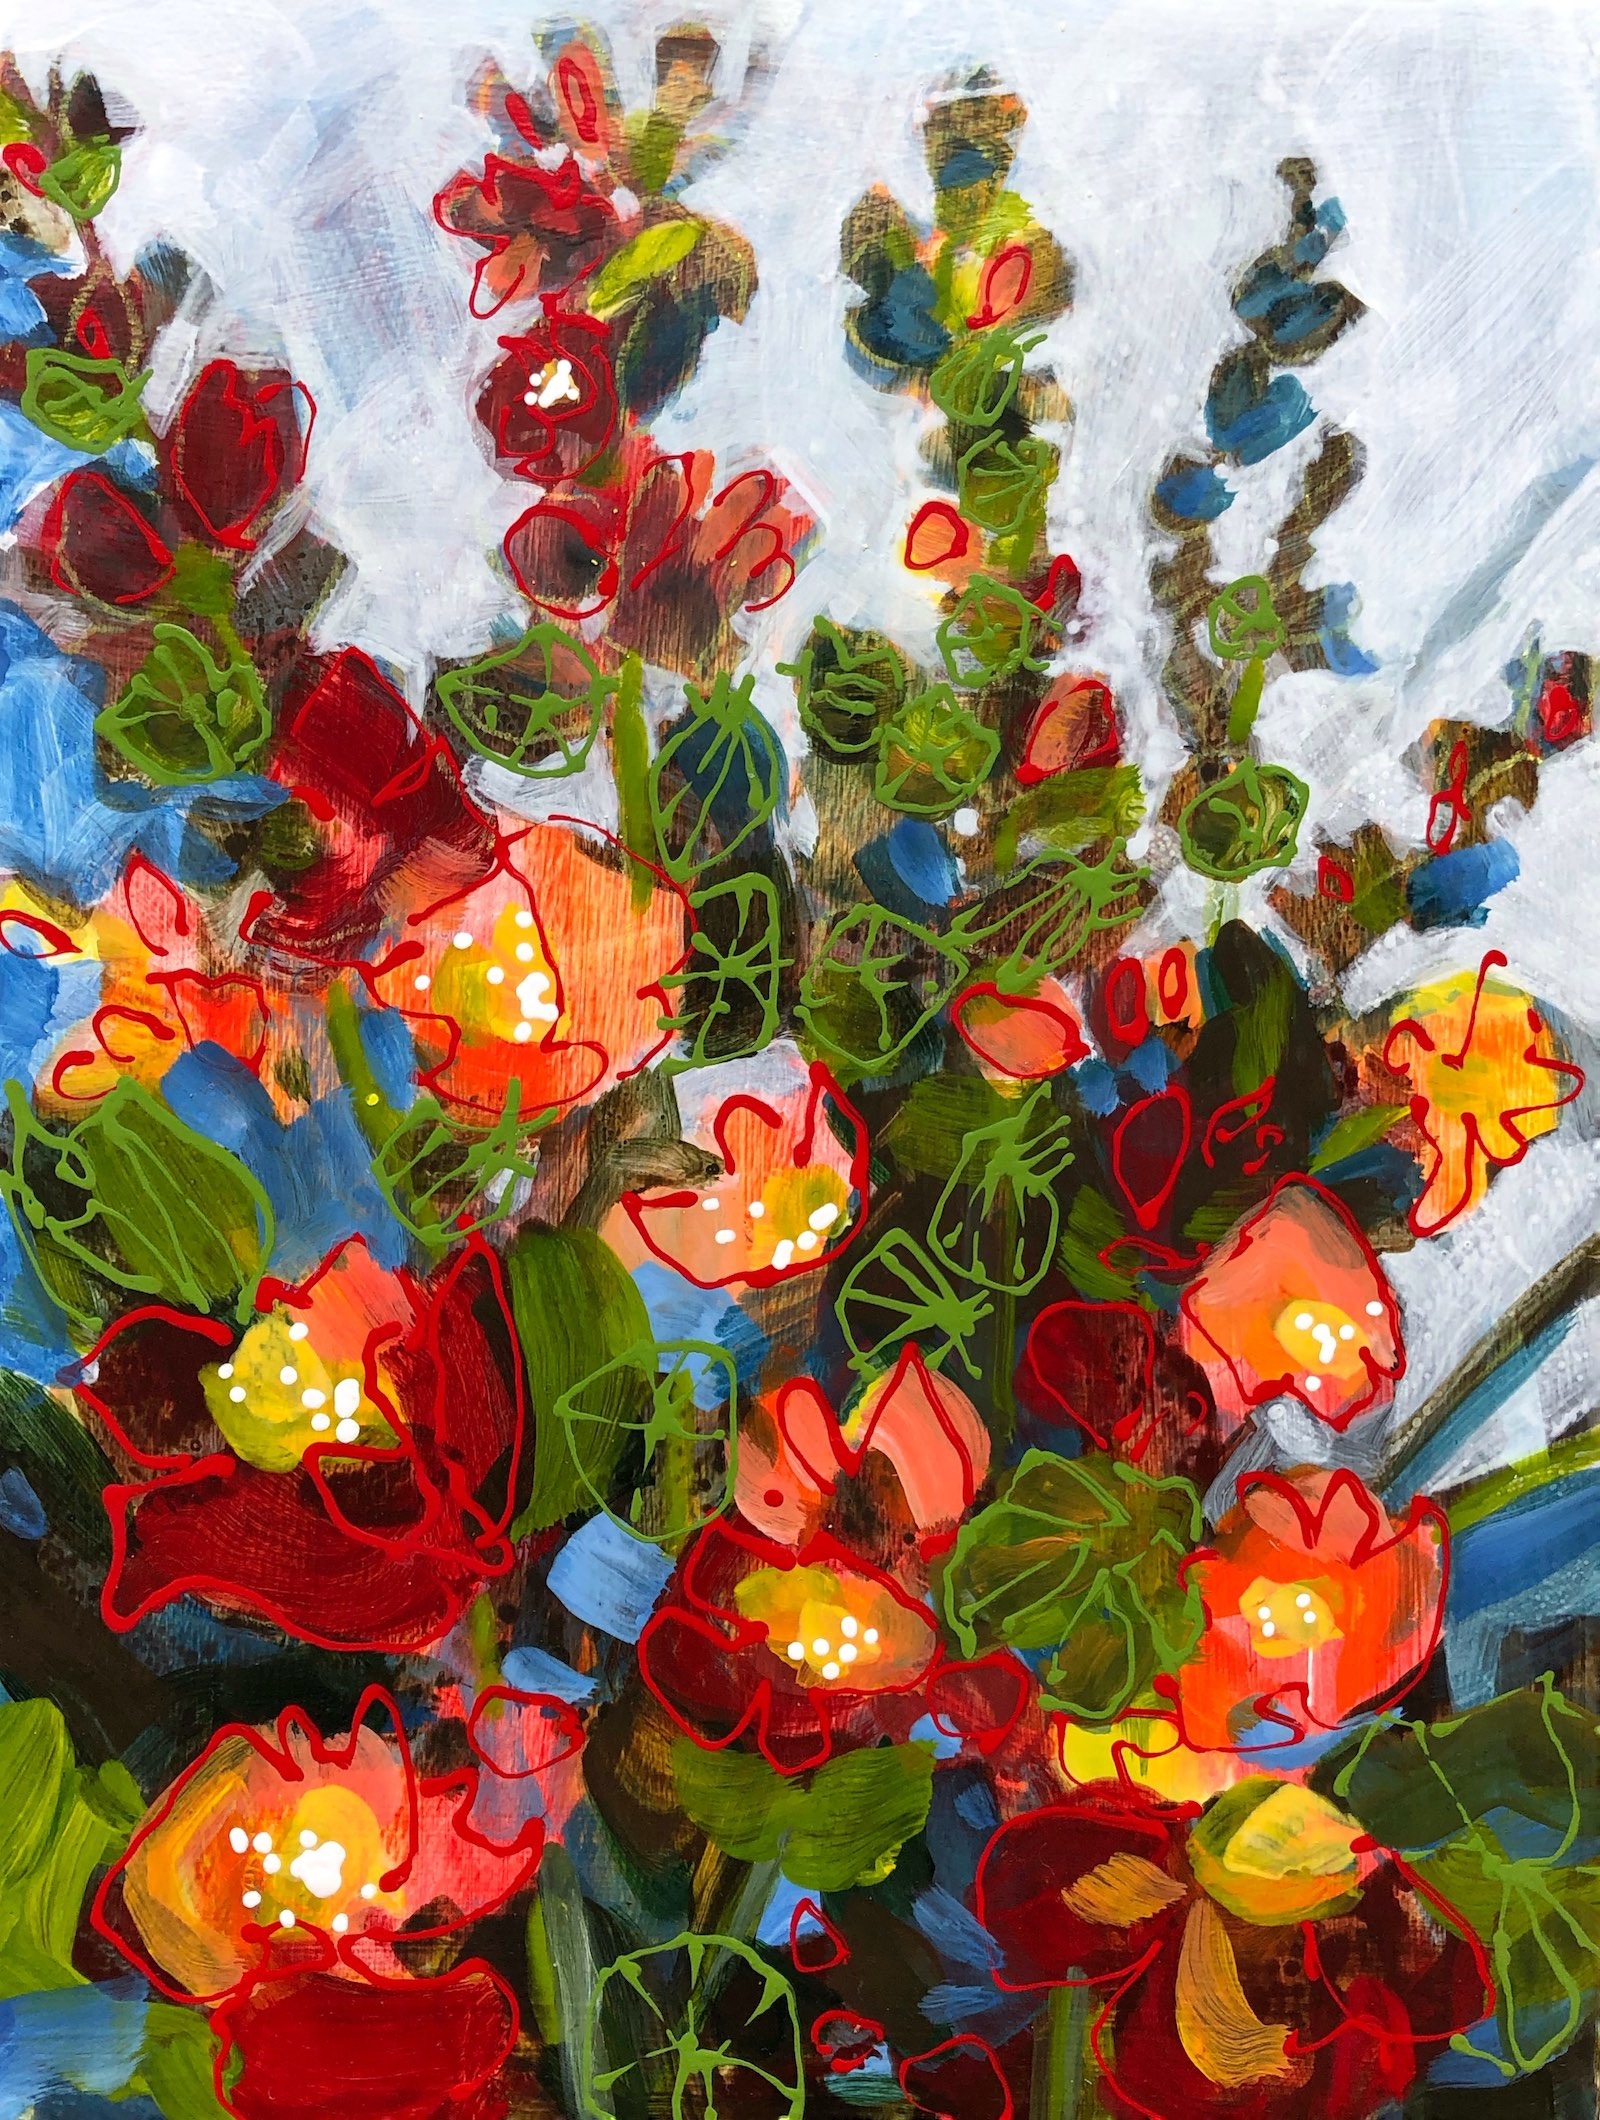 Desert Flowers No4 painting by the cool artist Lance Whitner in Steamboat Springs Colorado